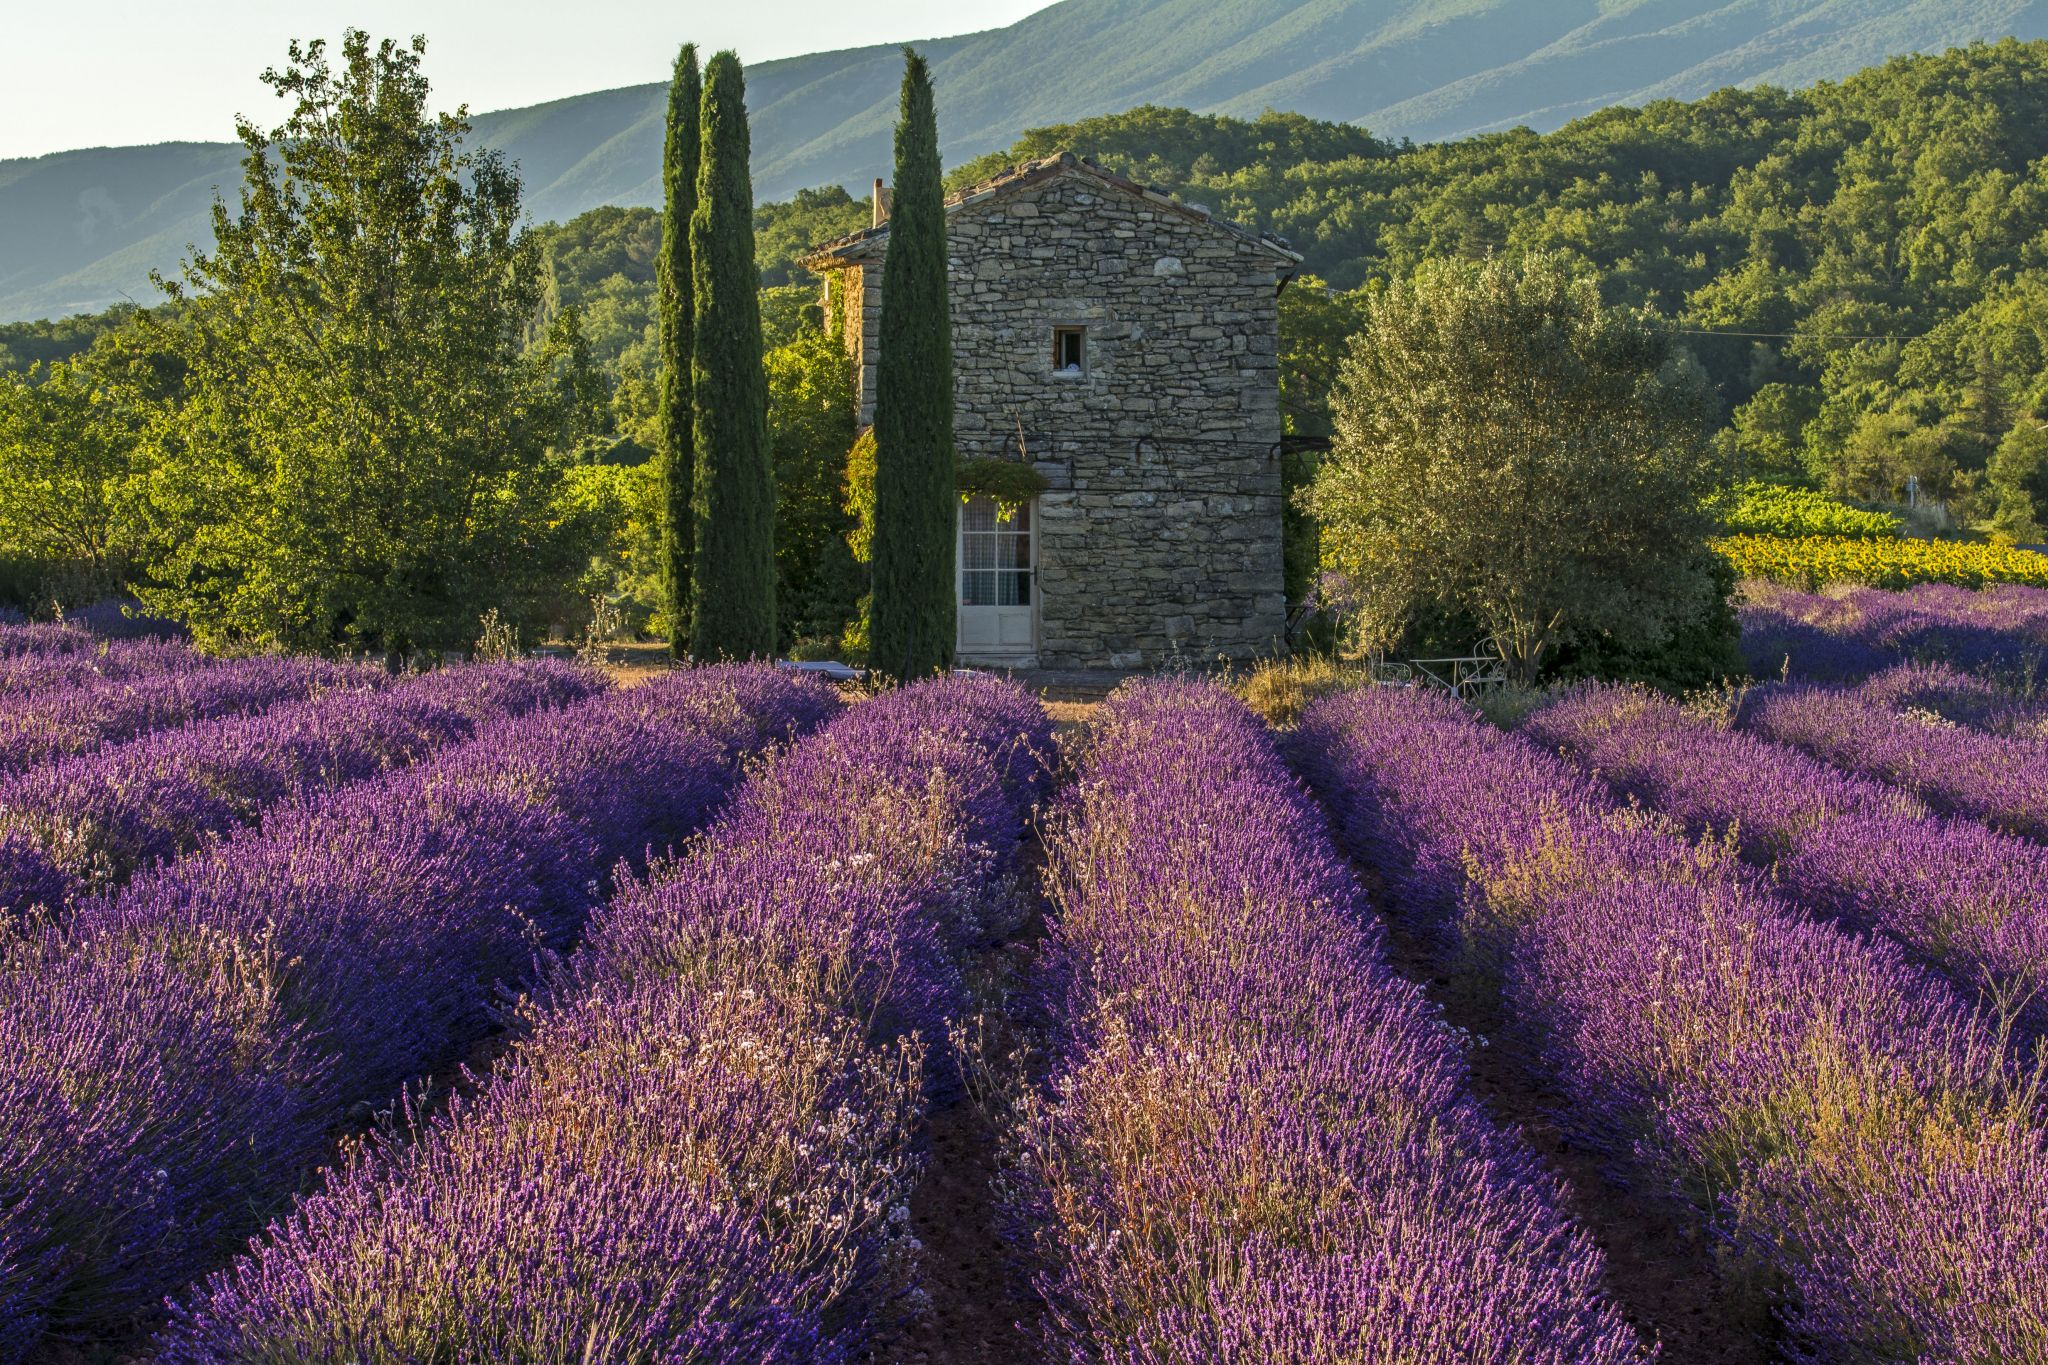 The Old Stone House in Fields of Lavender, France